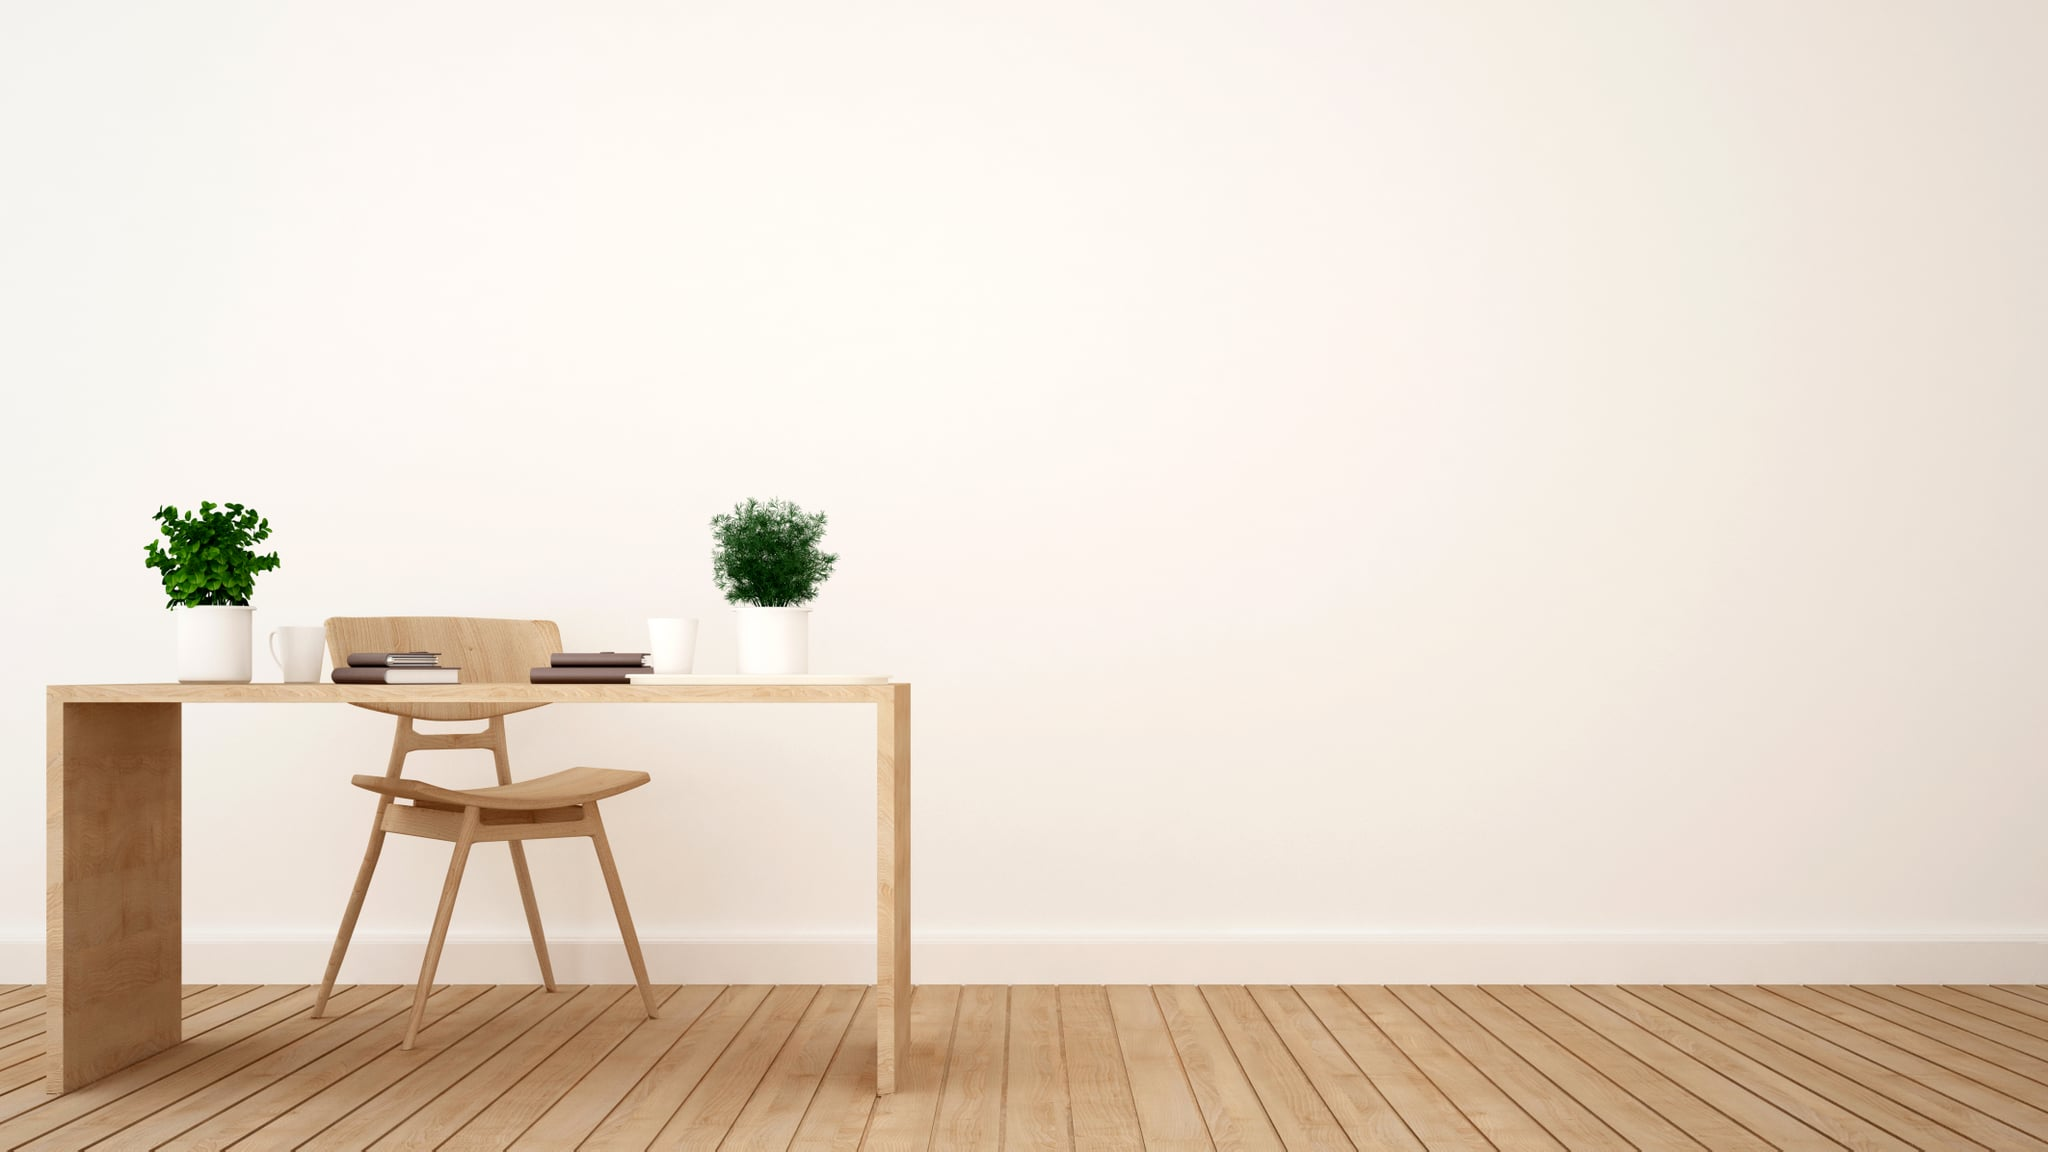 Minimalism can make you happier popsugar australia smart for Minimalist lifestyle